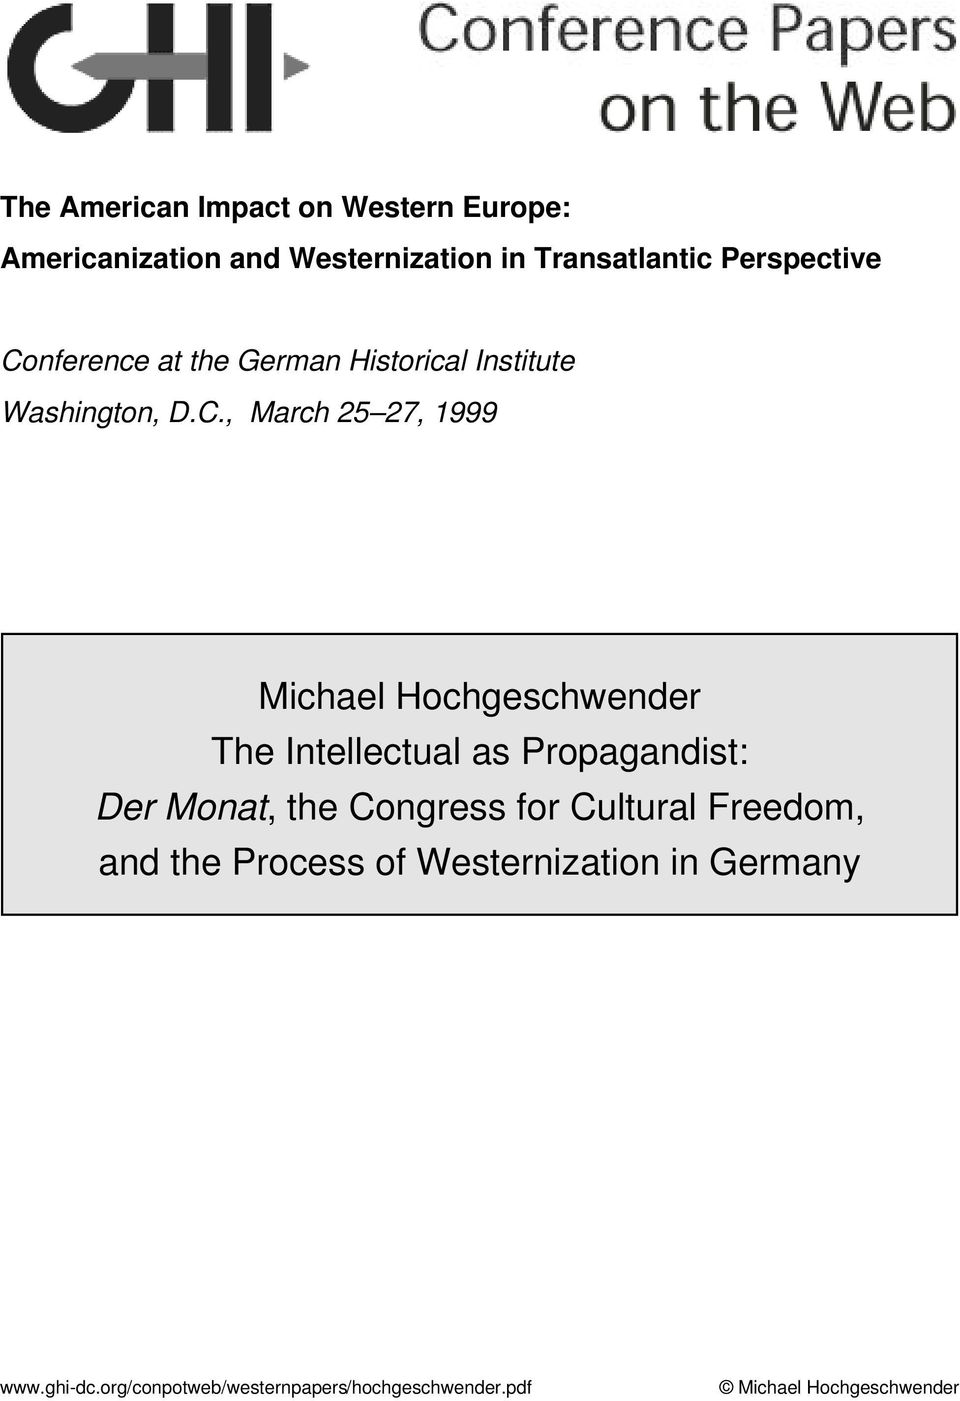 Hochgeschwender The Intellectual as Propagandist: Der Monat, the Congress for Cultural Freedom, and the